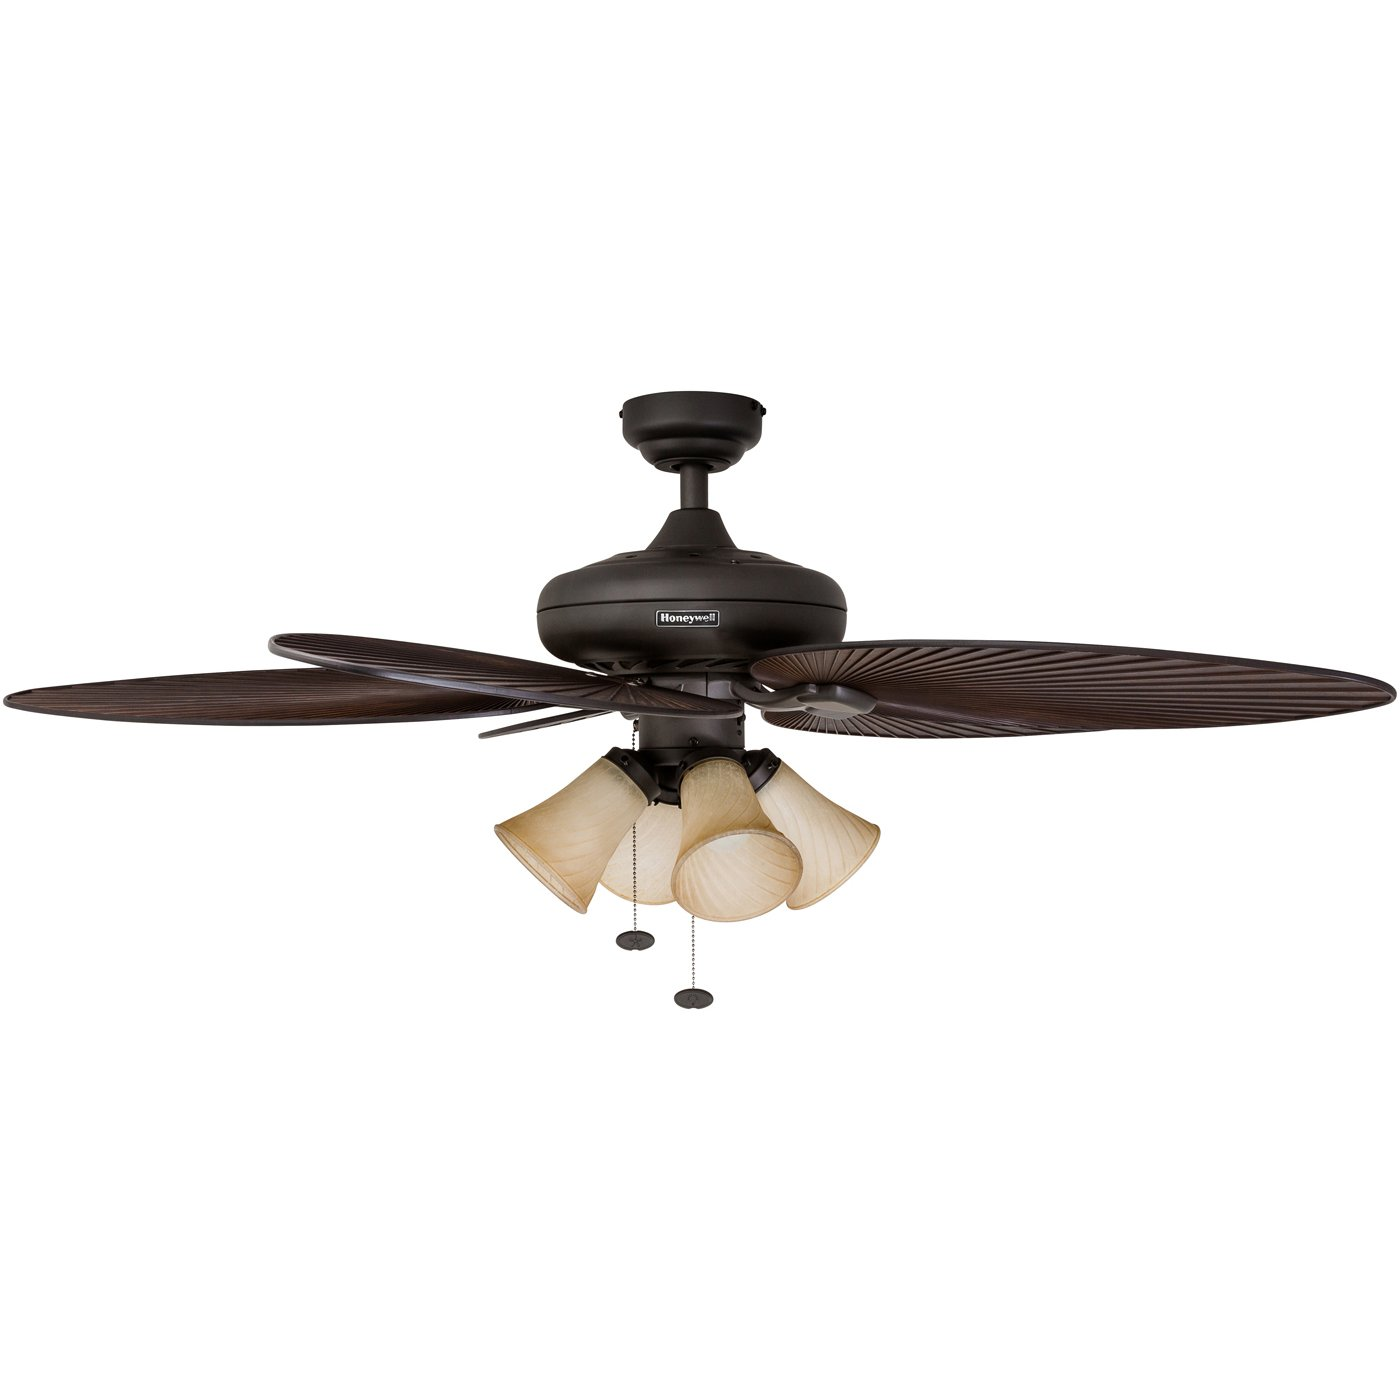 indoor tropical ceiling fans with lights honeywell palm island 52inch tropical ceiling fan with sunset shade lights five leaf blades indooroutdoor oilrubbed bronze 50203 u003c